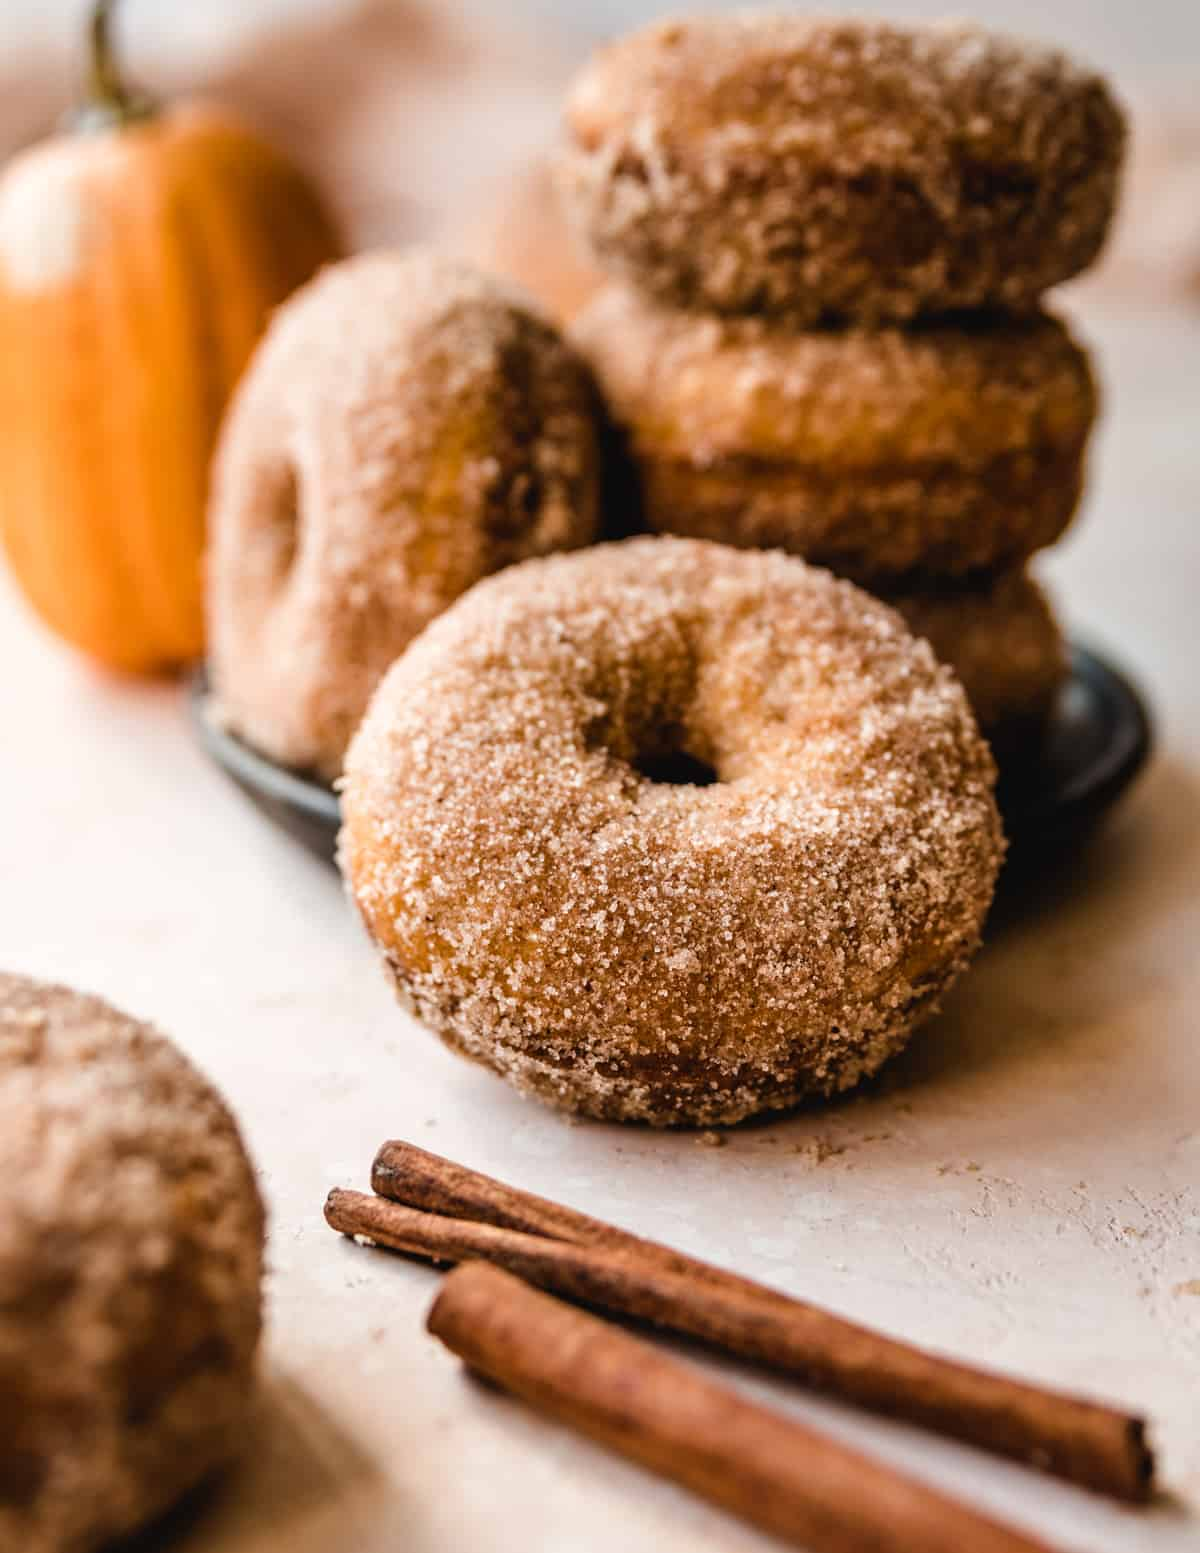 The sweet cinnamon sugar coating on these pumpkin donuts provides just the right touch of crunchy and sweet.